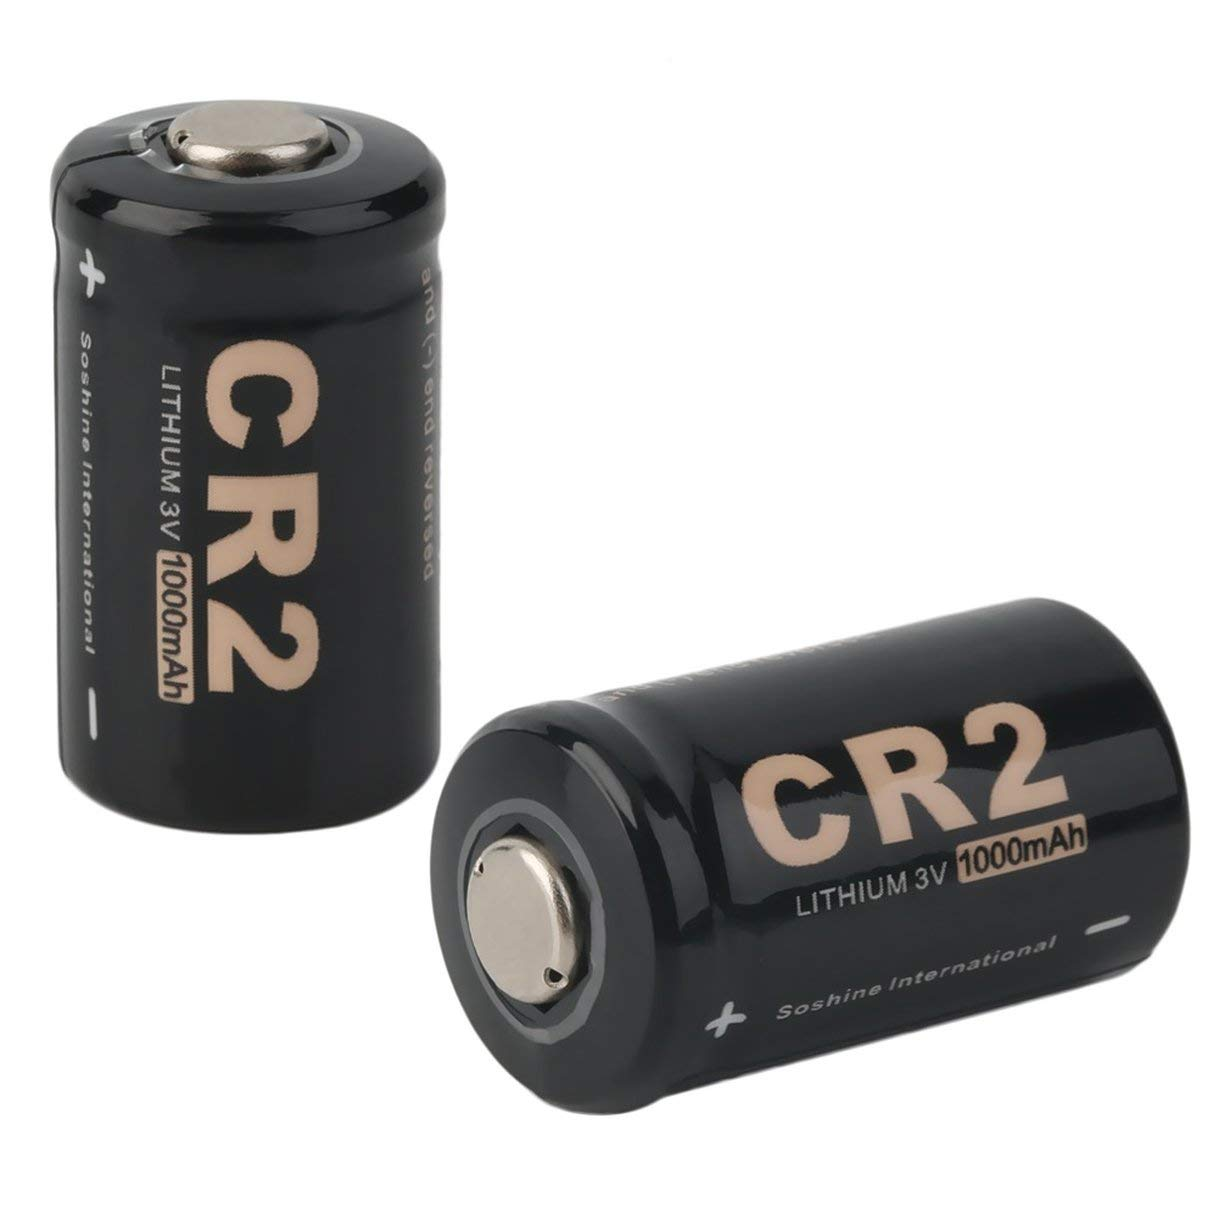 2pcs CR2 3.0V 1000mAh Rechargeable Battery Maximum Capacity Reliability Built-in Safety Circuitry with Case for Soshine-Black-1 Size